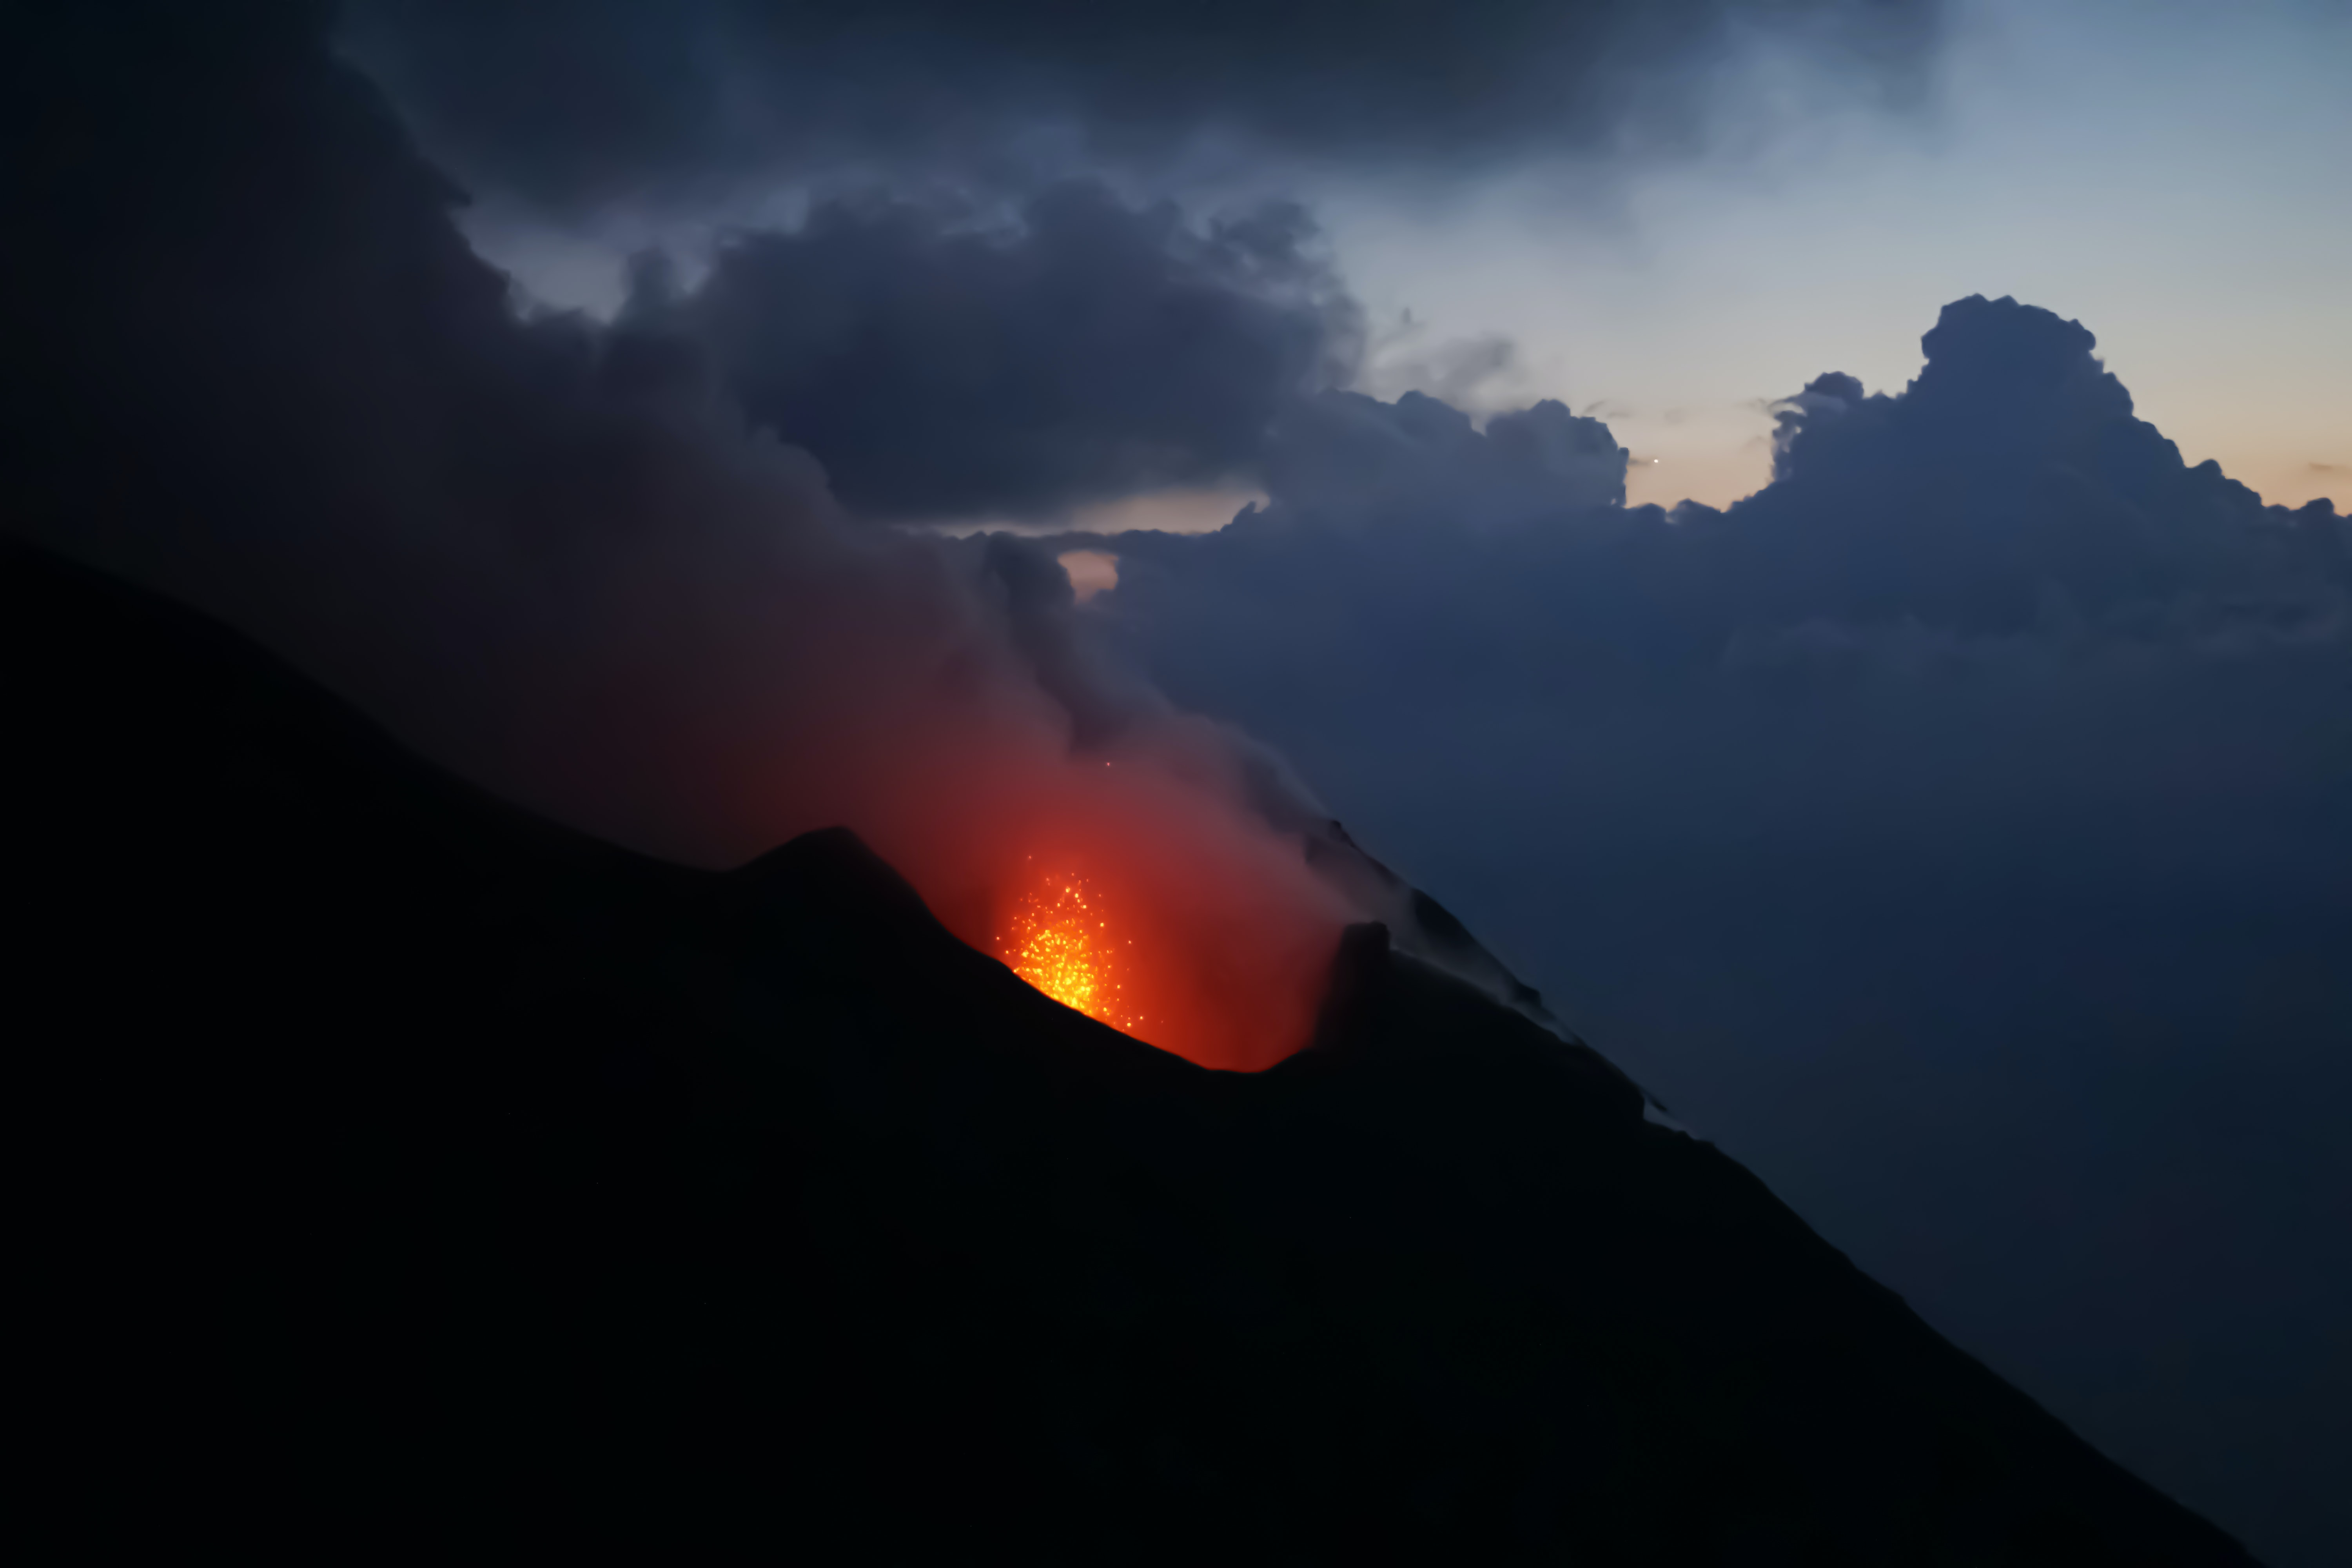 volcano with lava during black cloudy day